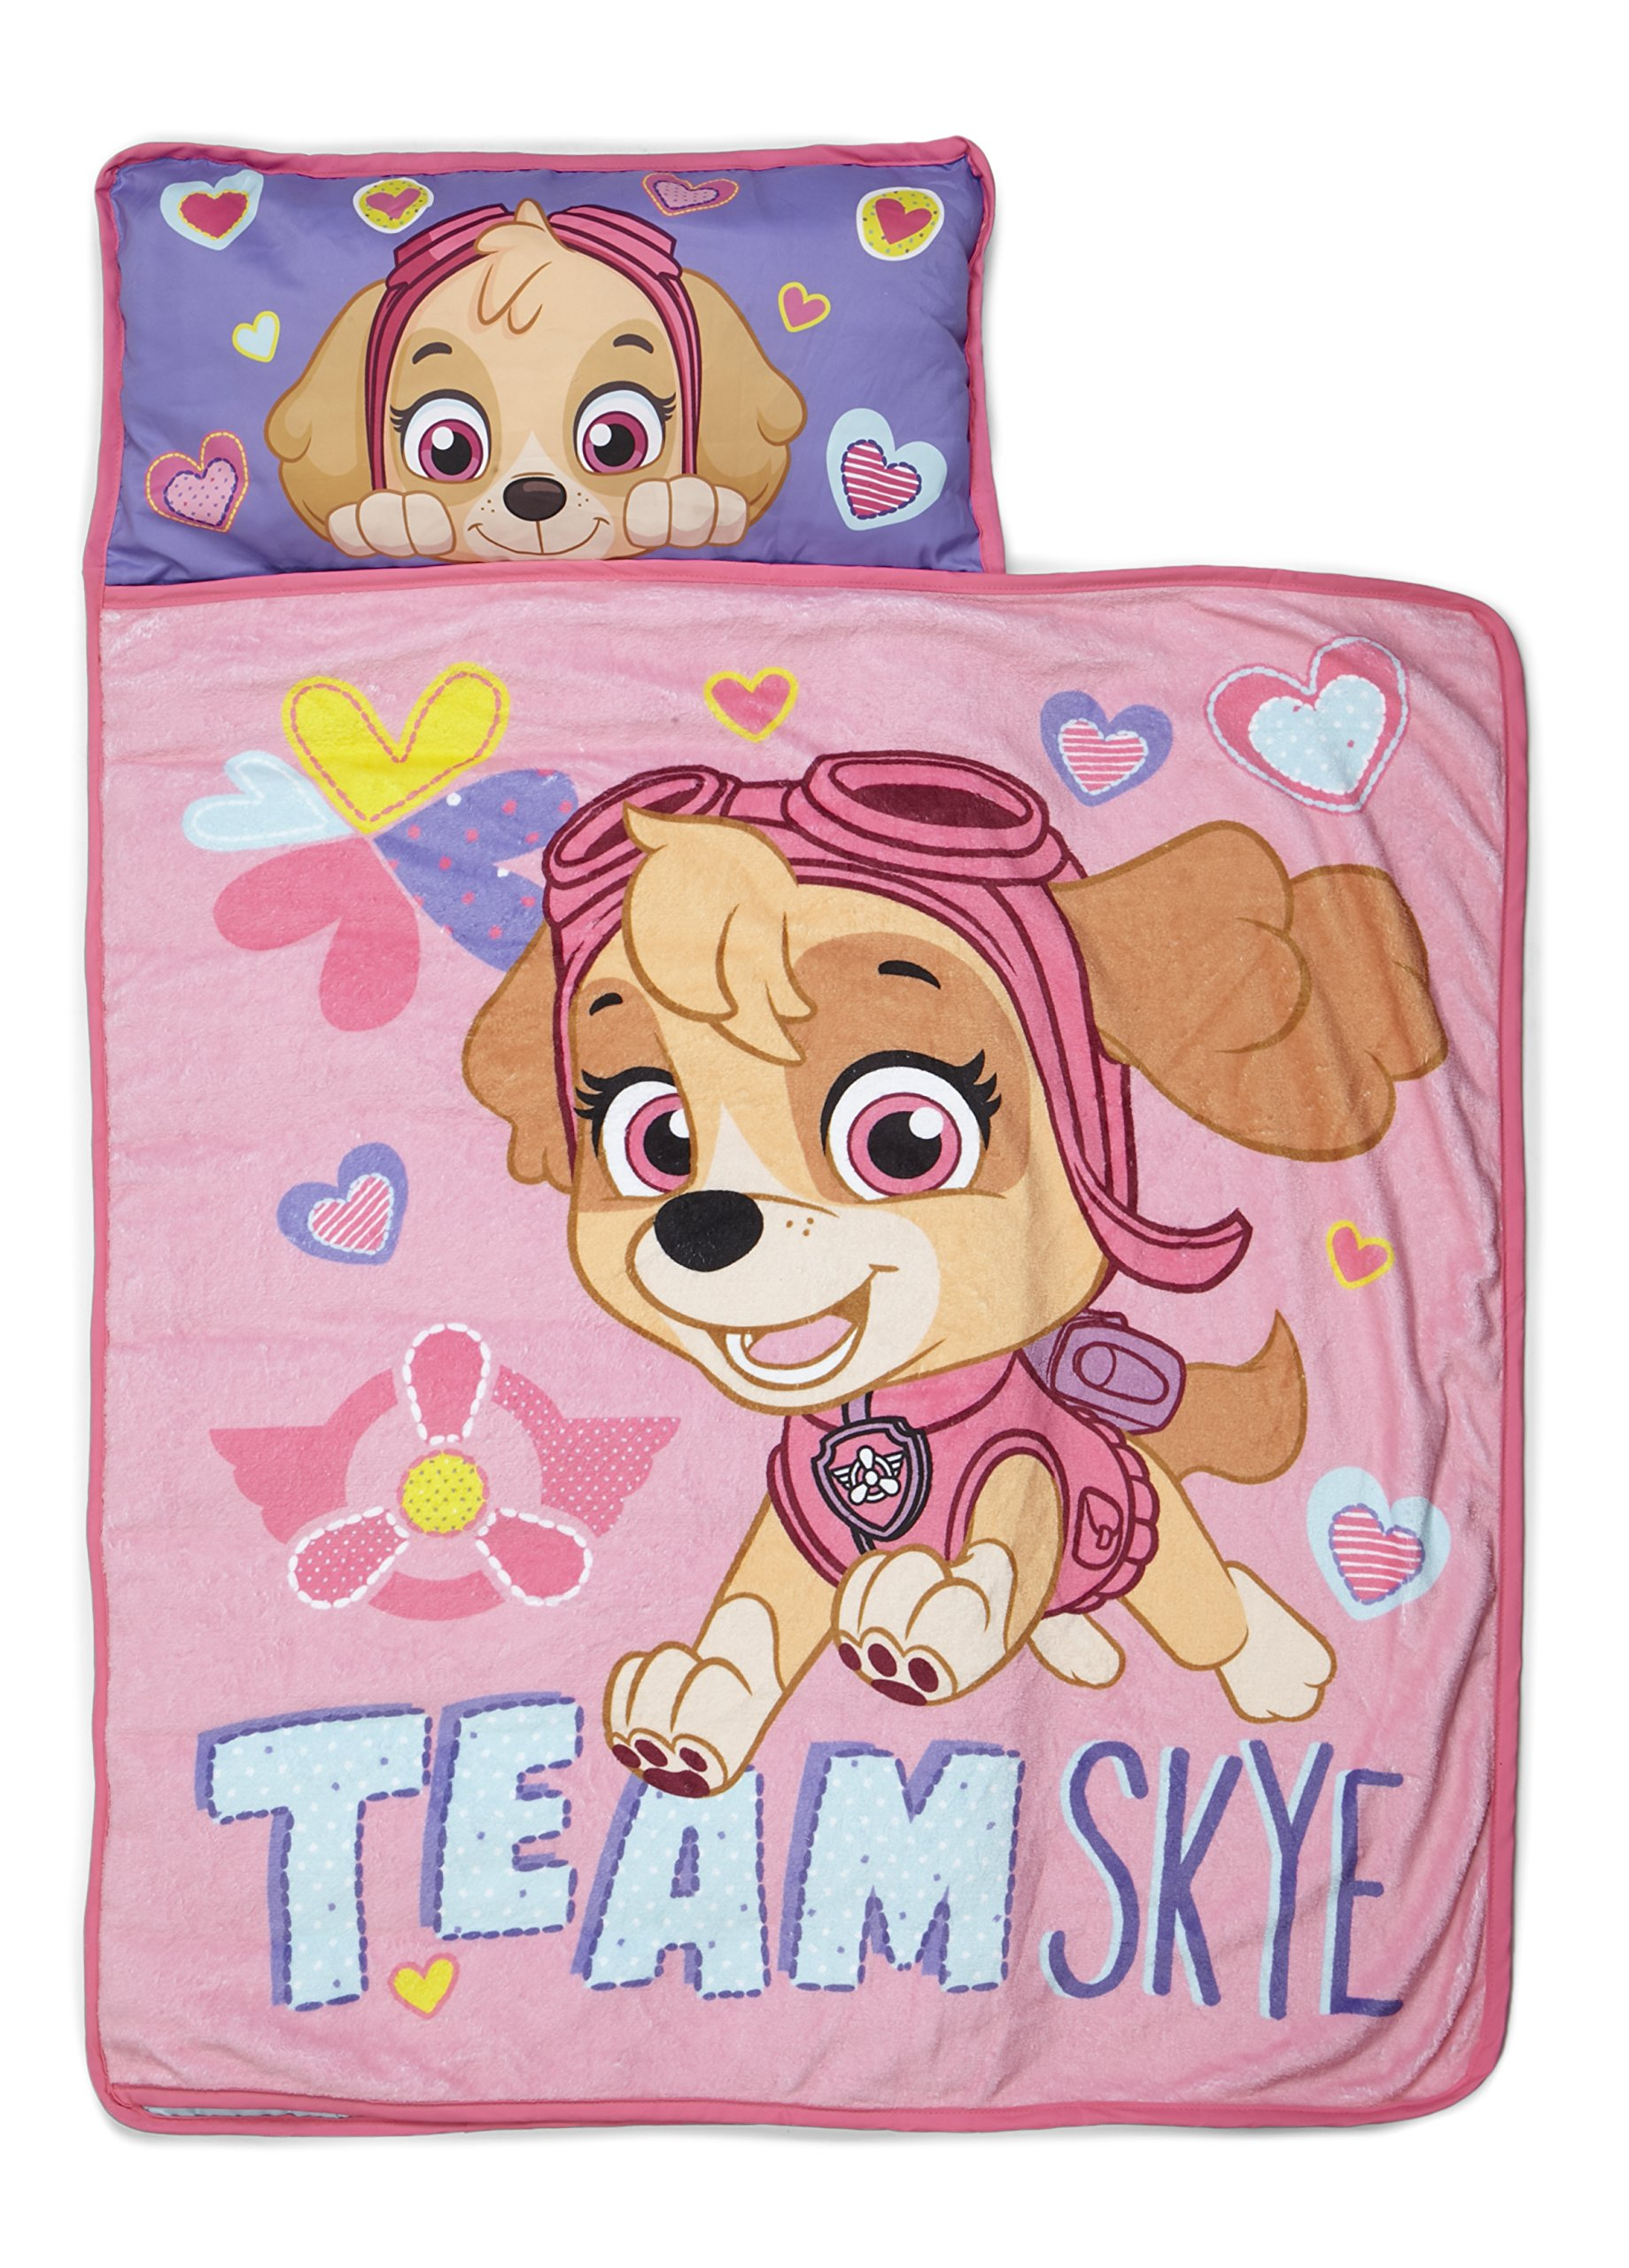 Paw Patrol Team Skye Nap Mat Set - Includes Pillow and Fleece Blanket - Great for Boys and Girls Napping at Daycare, Preschool, or Kindergarten - Fits Sleeping Toddlers and Young Children by Nickelodeon